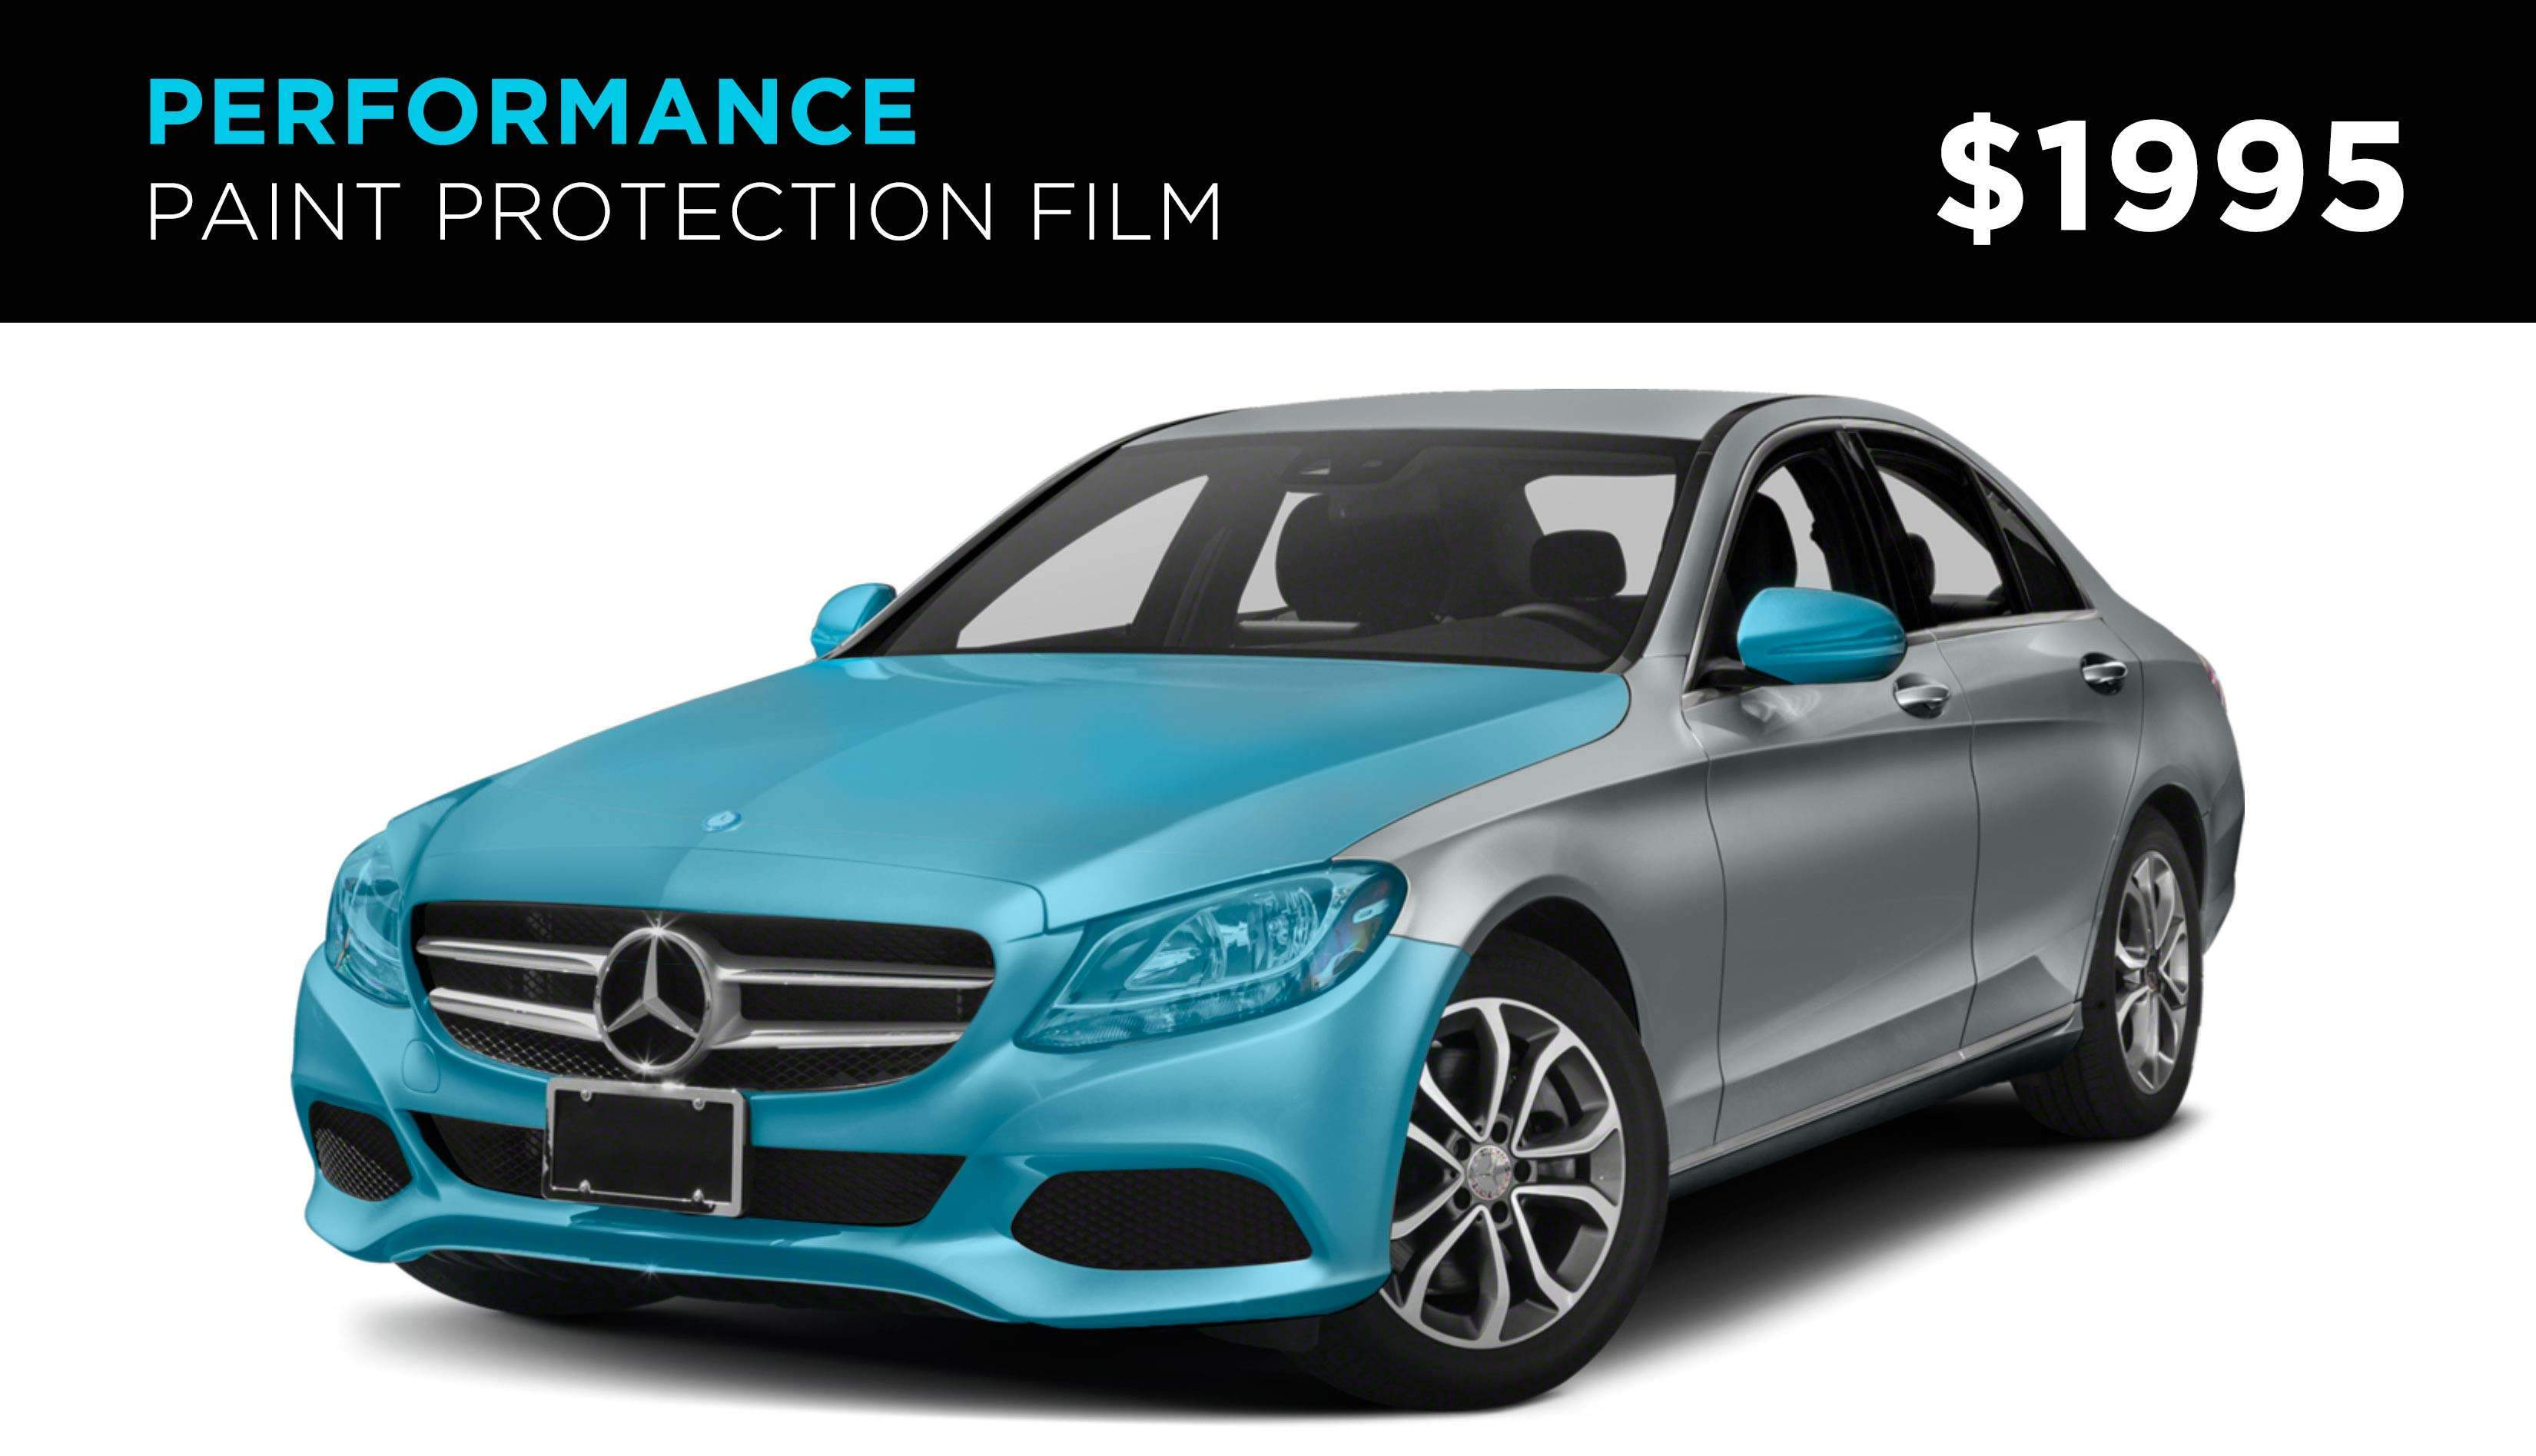 Performance Paint Protection